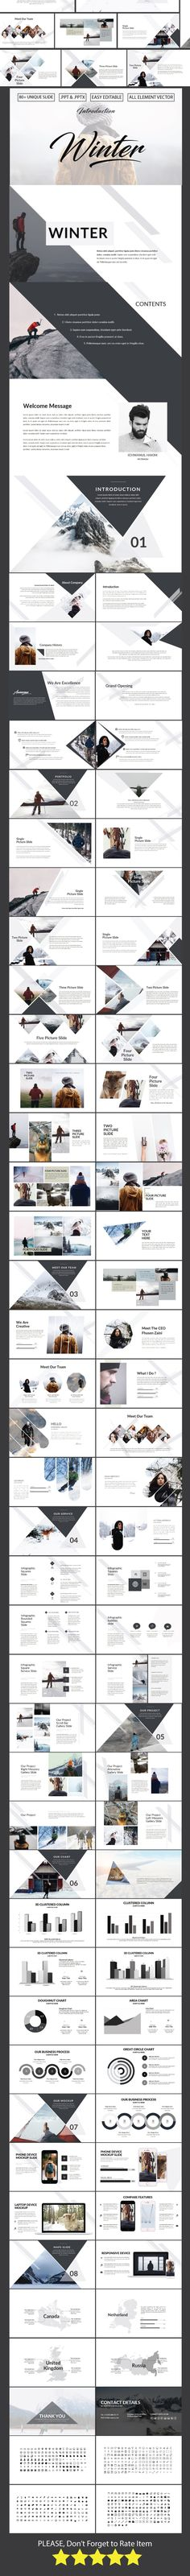 30 best PowerPoint Design images on Pinterest Editorial design - winter powerpoint template